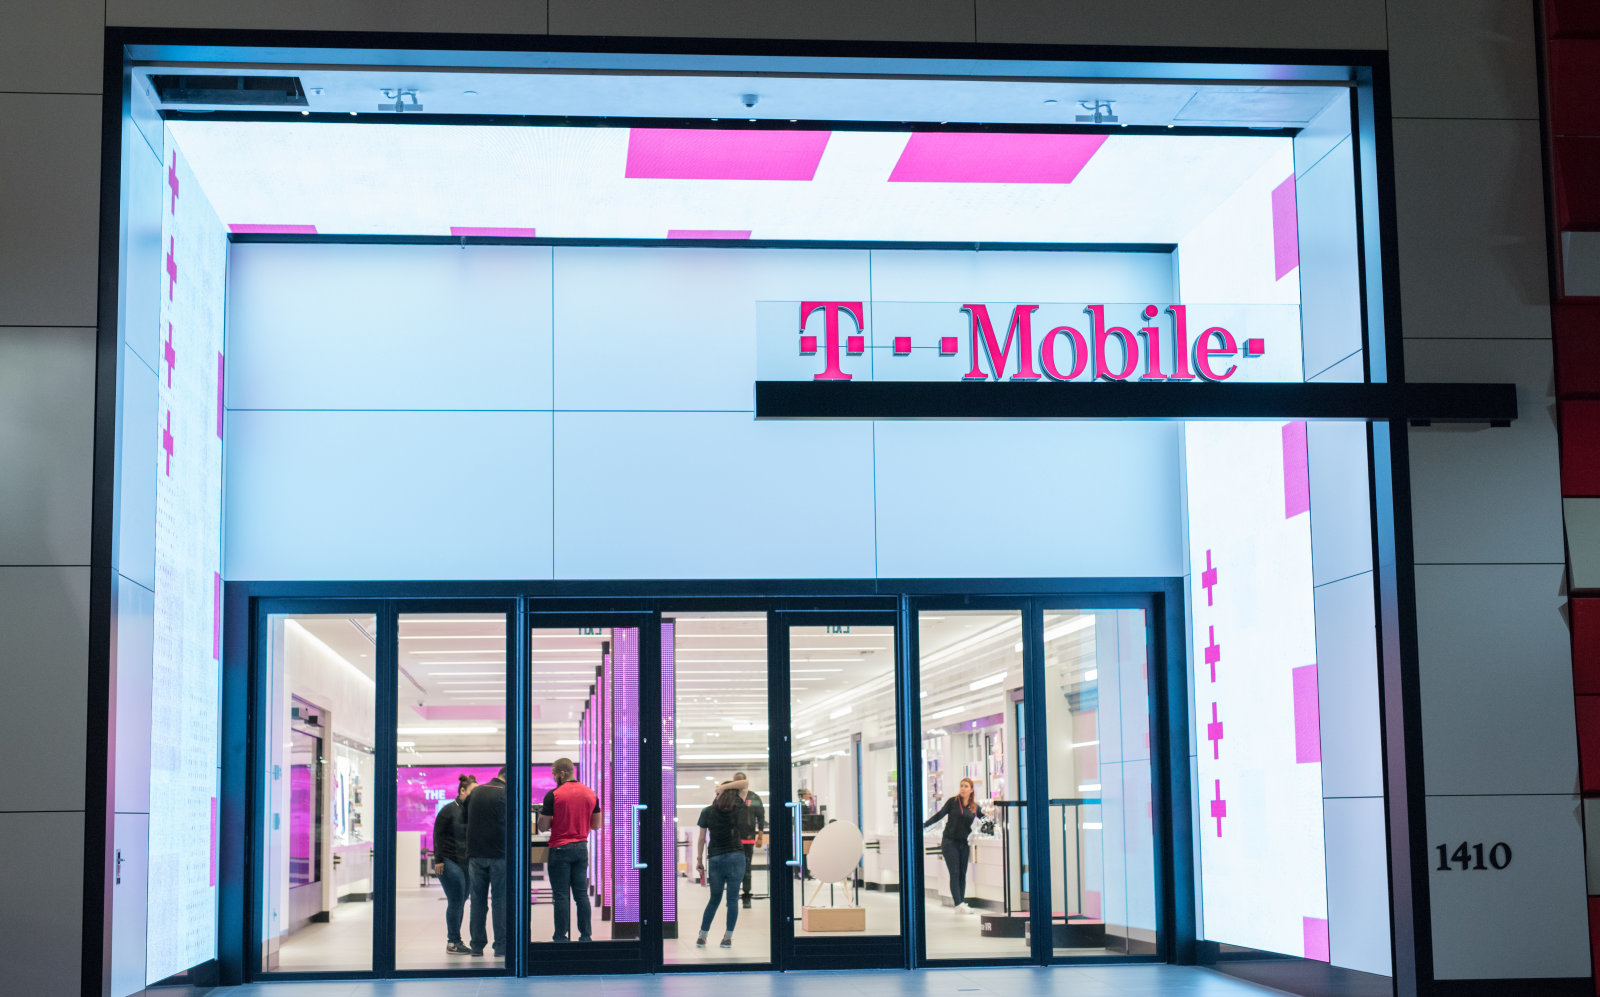 Santa Monica, CA: April 13, 2017: The exterior of a T-Mobile store in Santa Monica. T-Mobile is headquartered in Bonn, Germany.